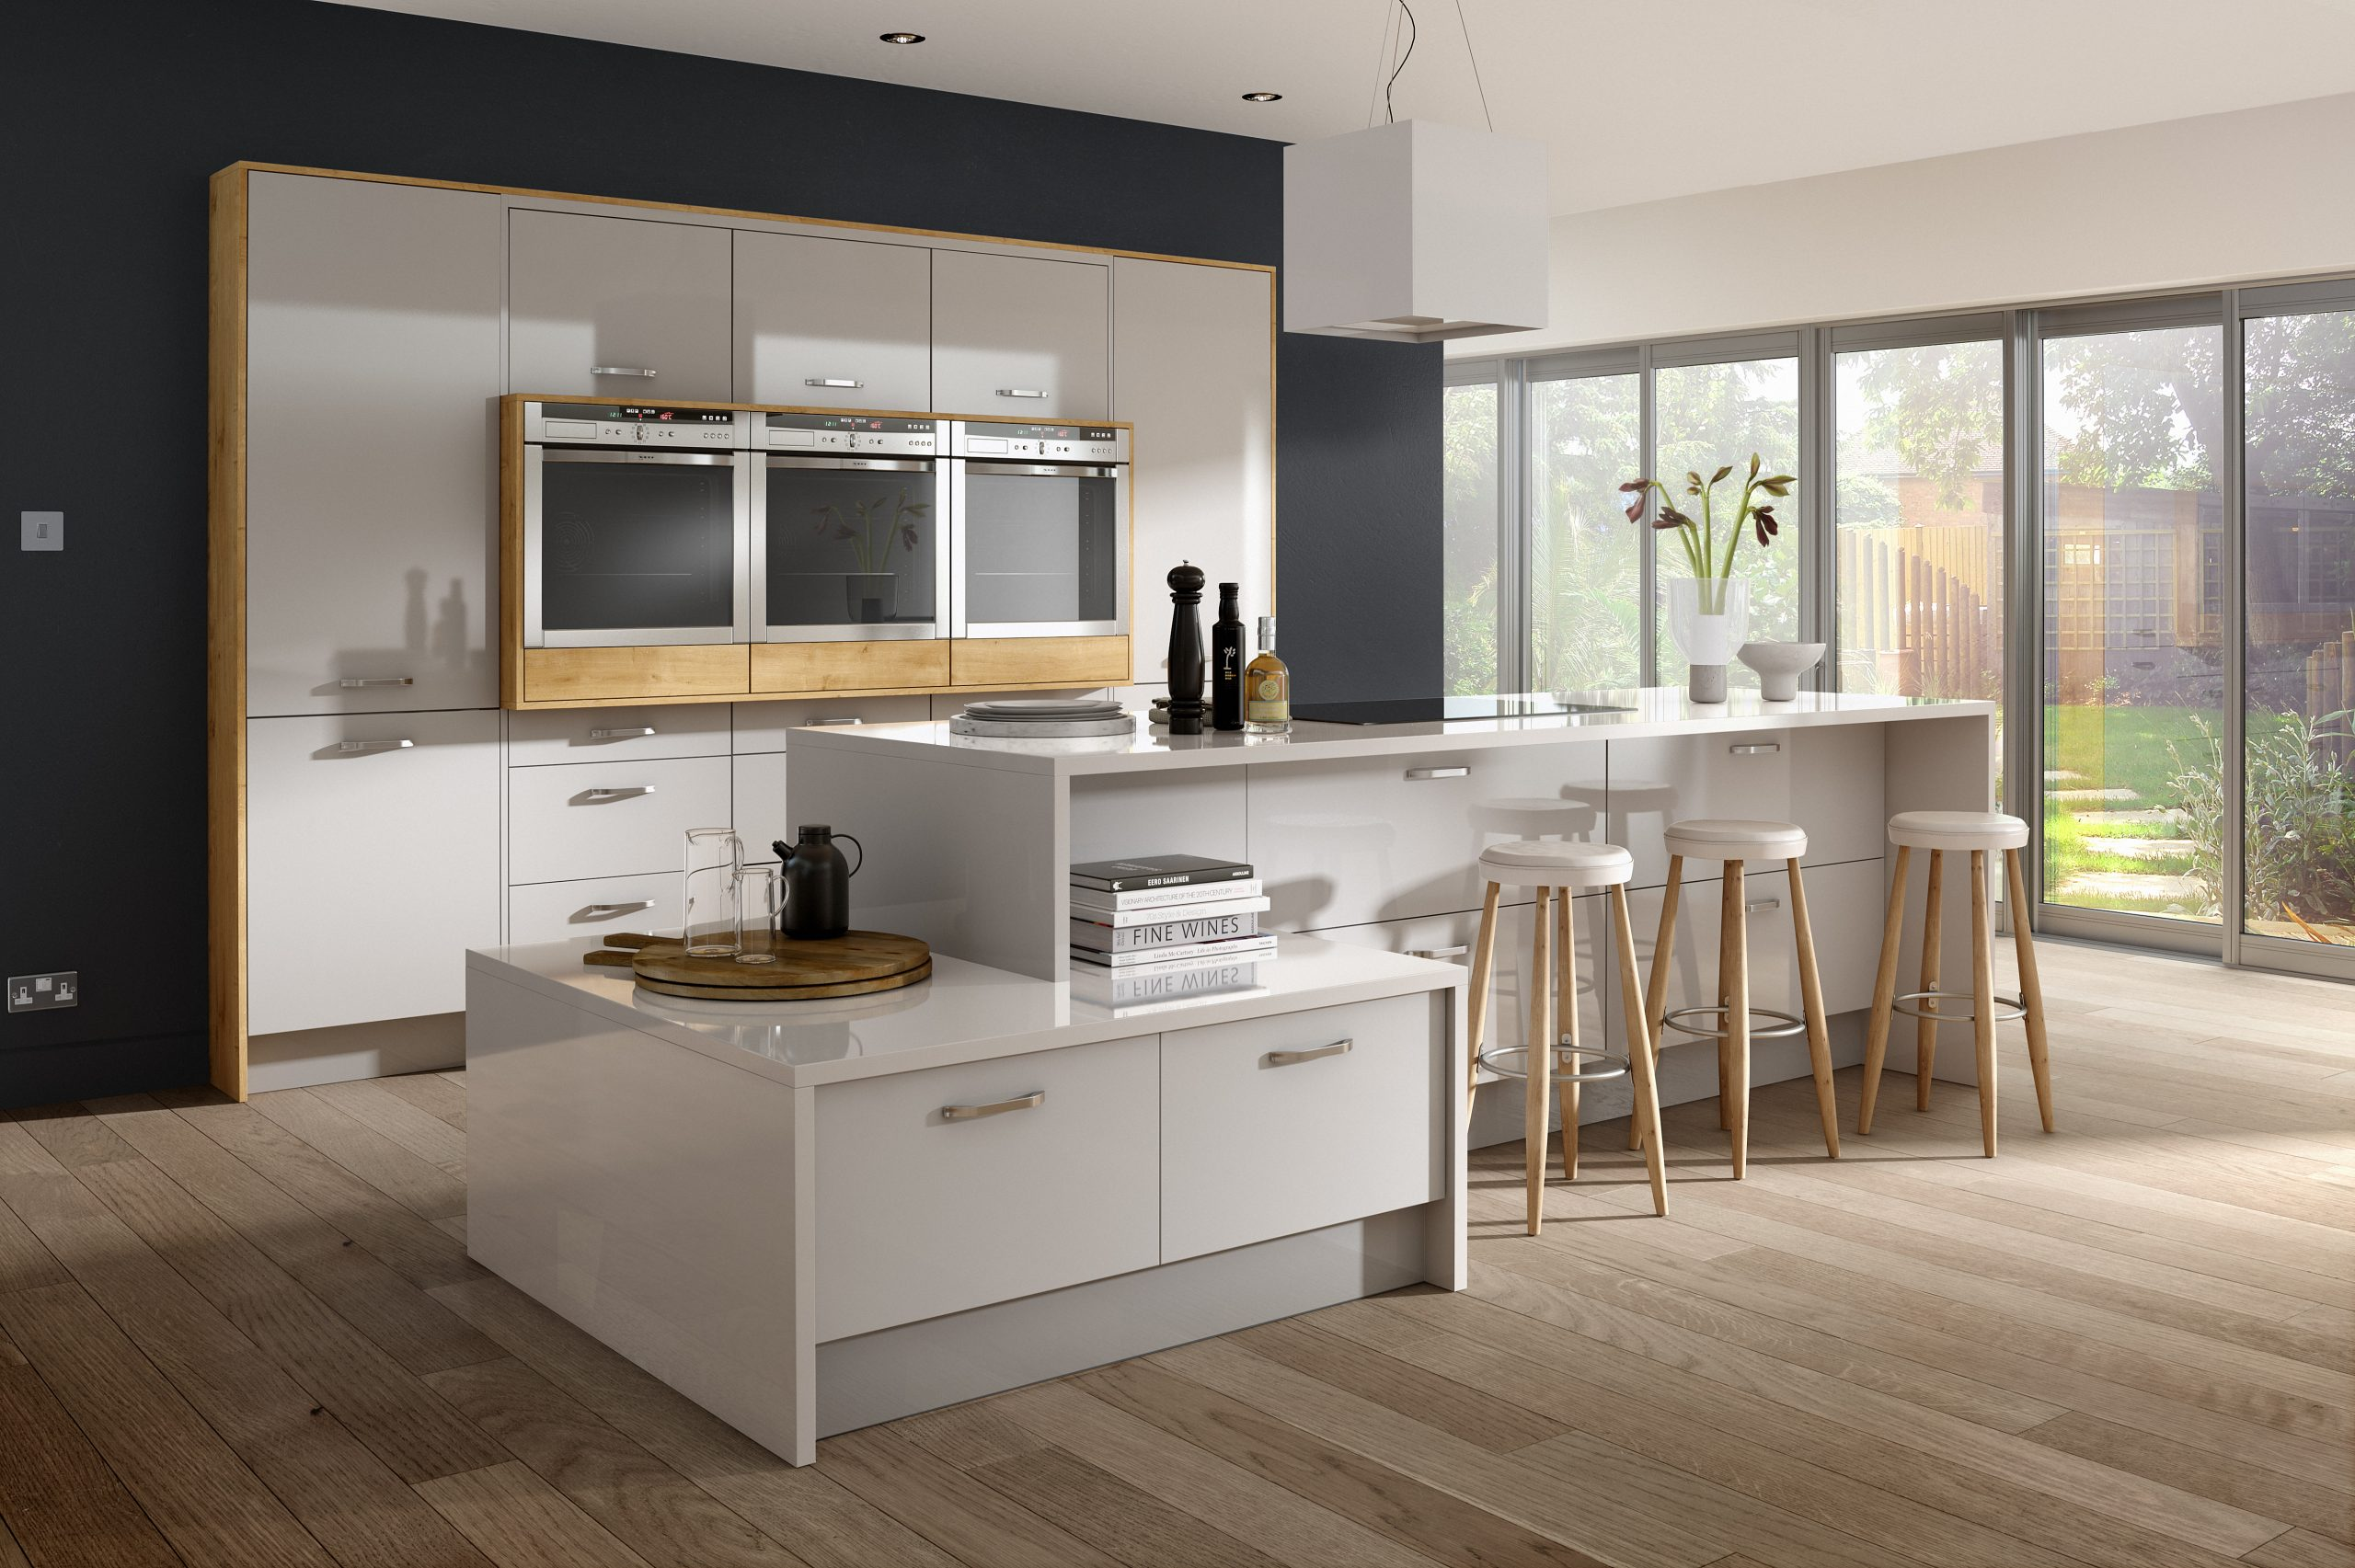 Kitchen with grey gloss finish